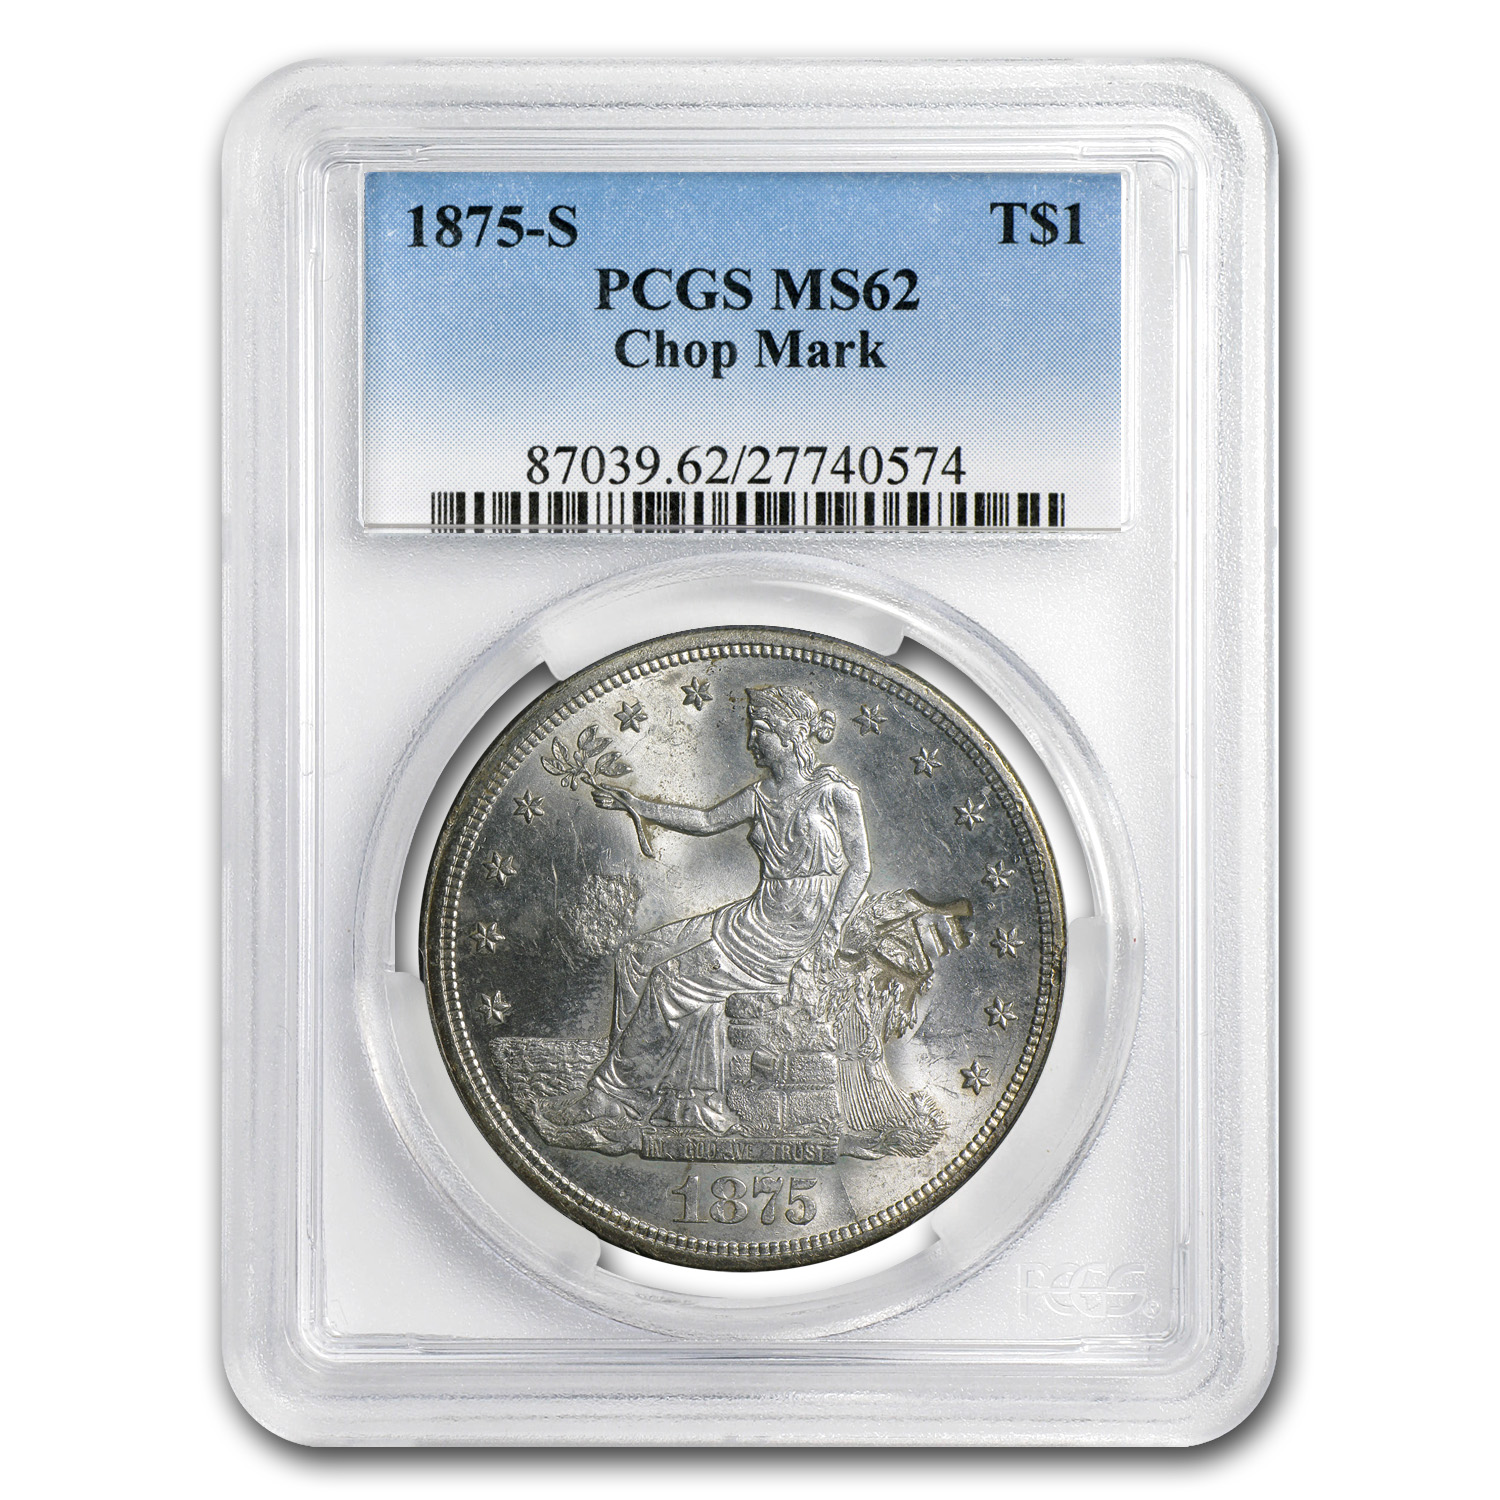 1875-S Trade Dollar - MS-62 PCGS - Chopmarks